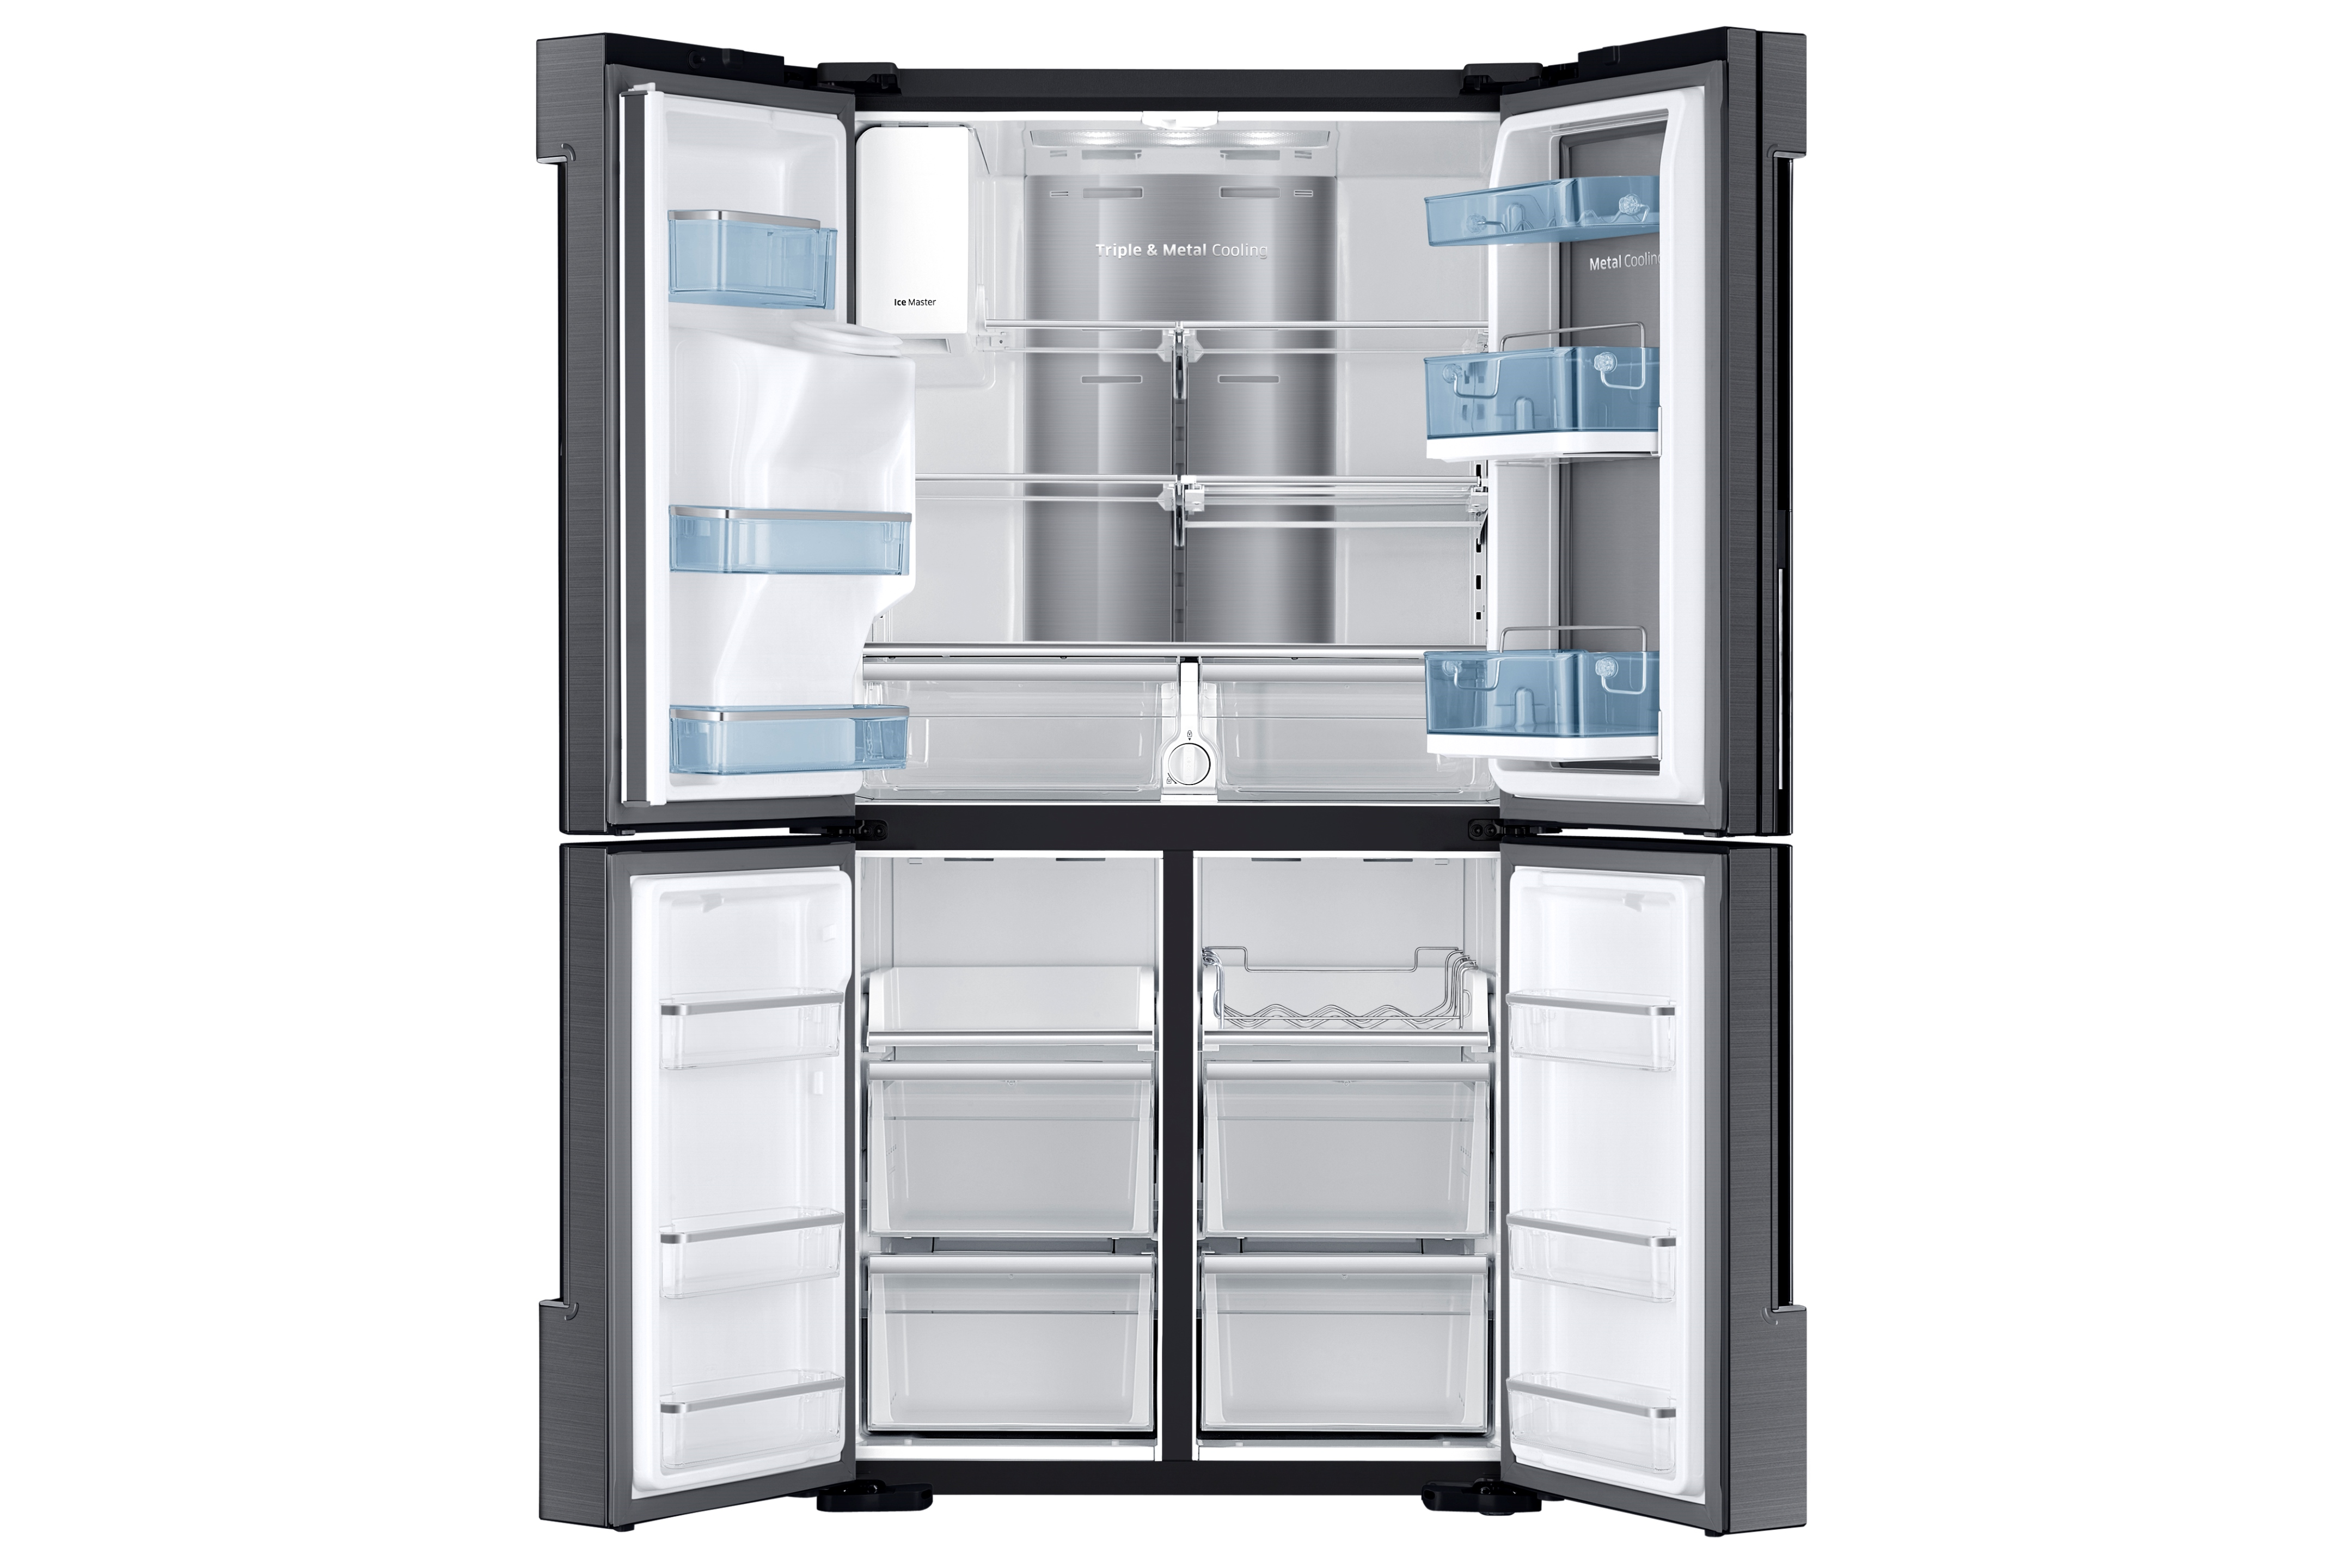 Samsung RF22K9381SG/AA 22.1 cu. ft. Counter Depth 4-Door Flex™ Food Showcase Refrigerator™ - Black Stainless Steel